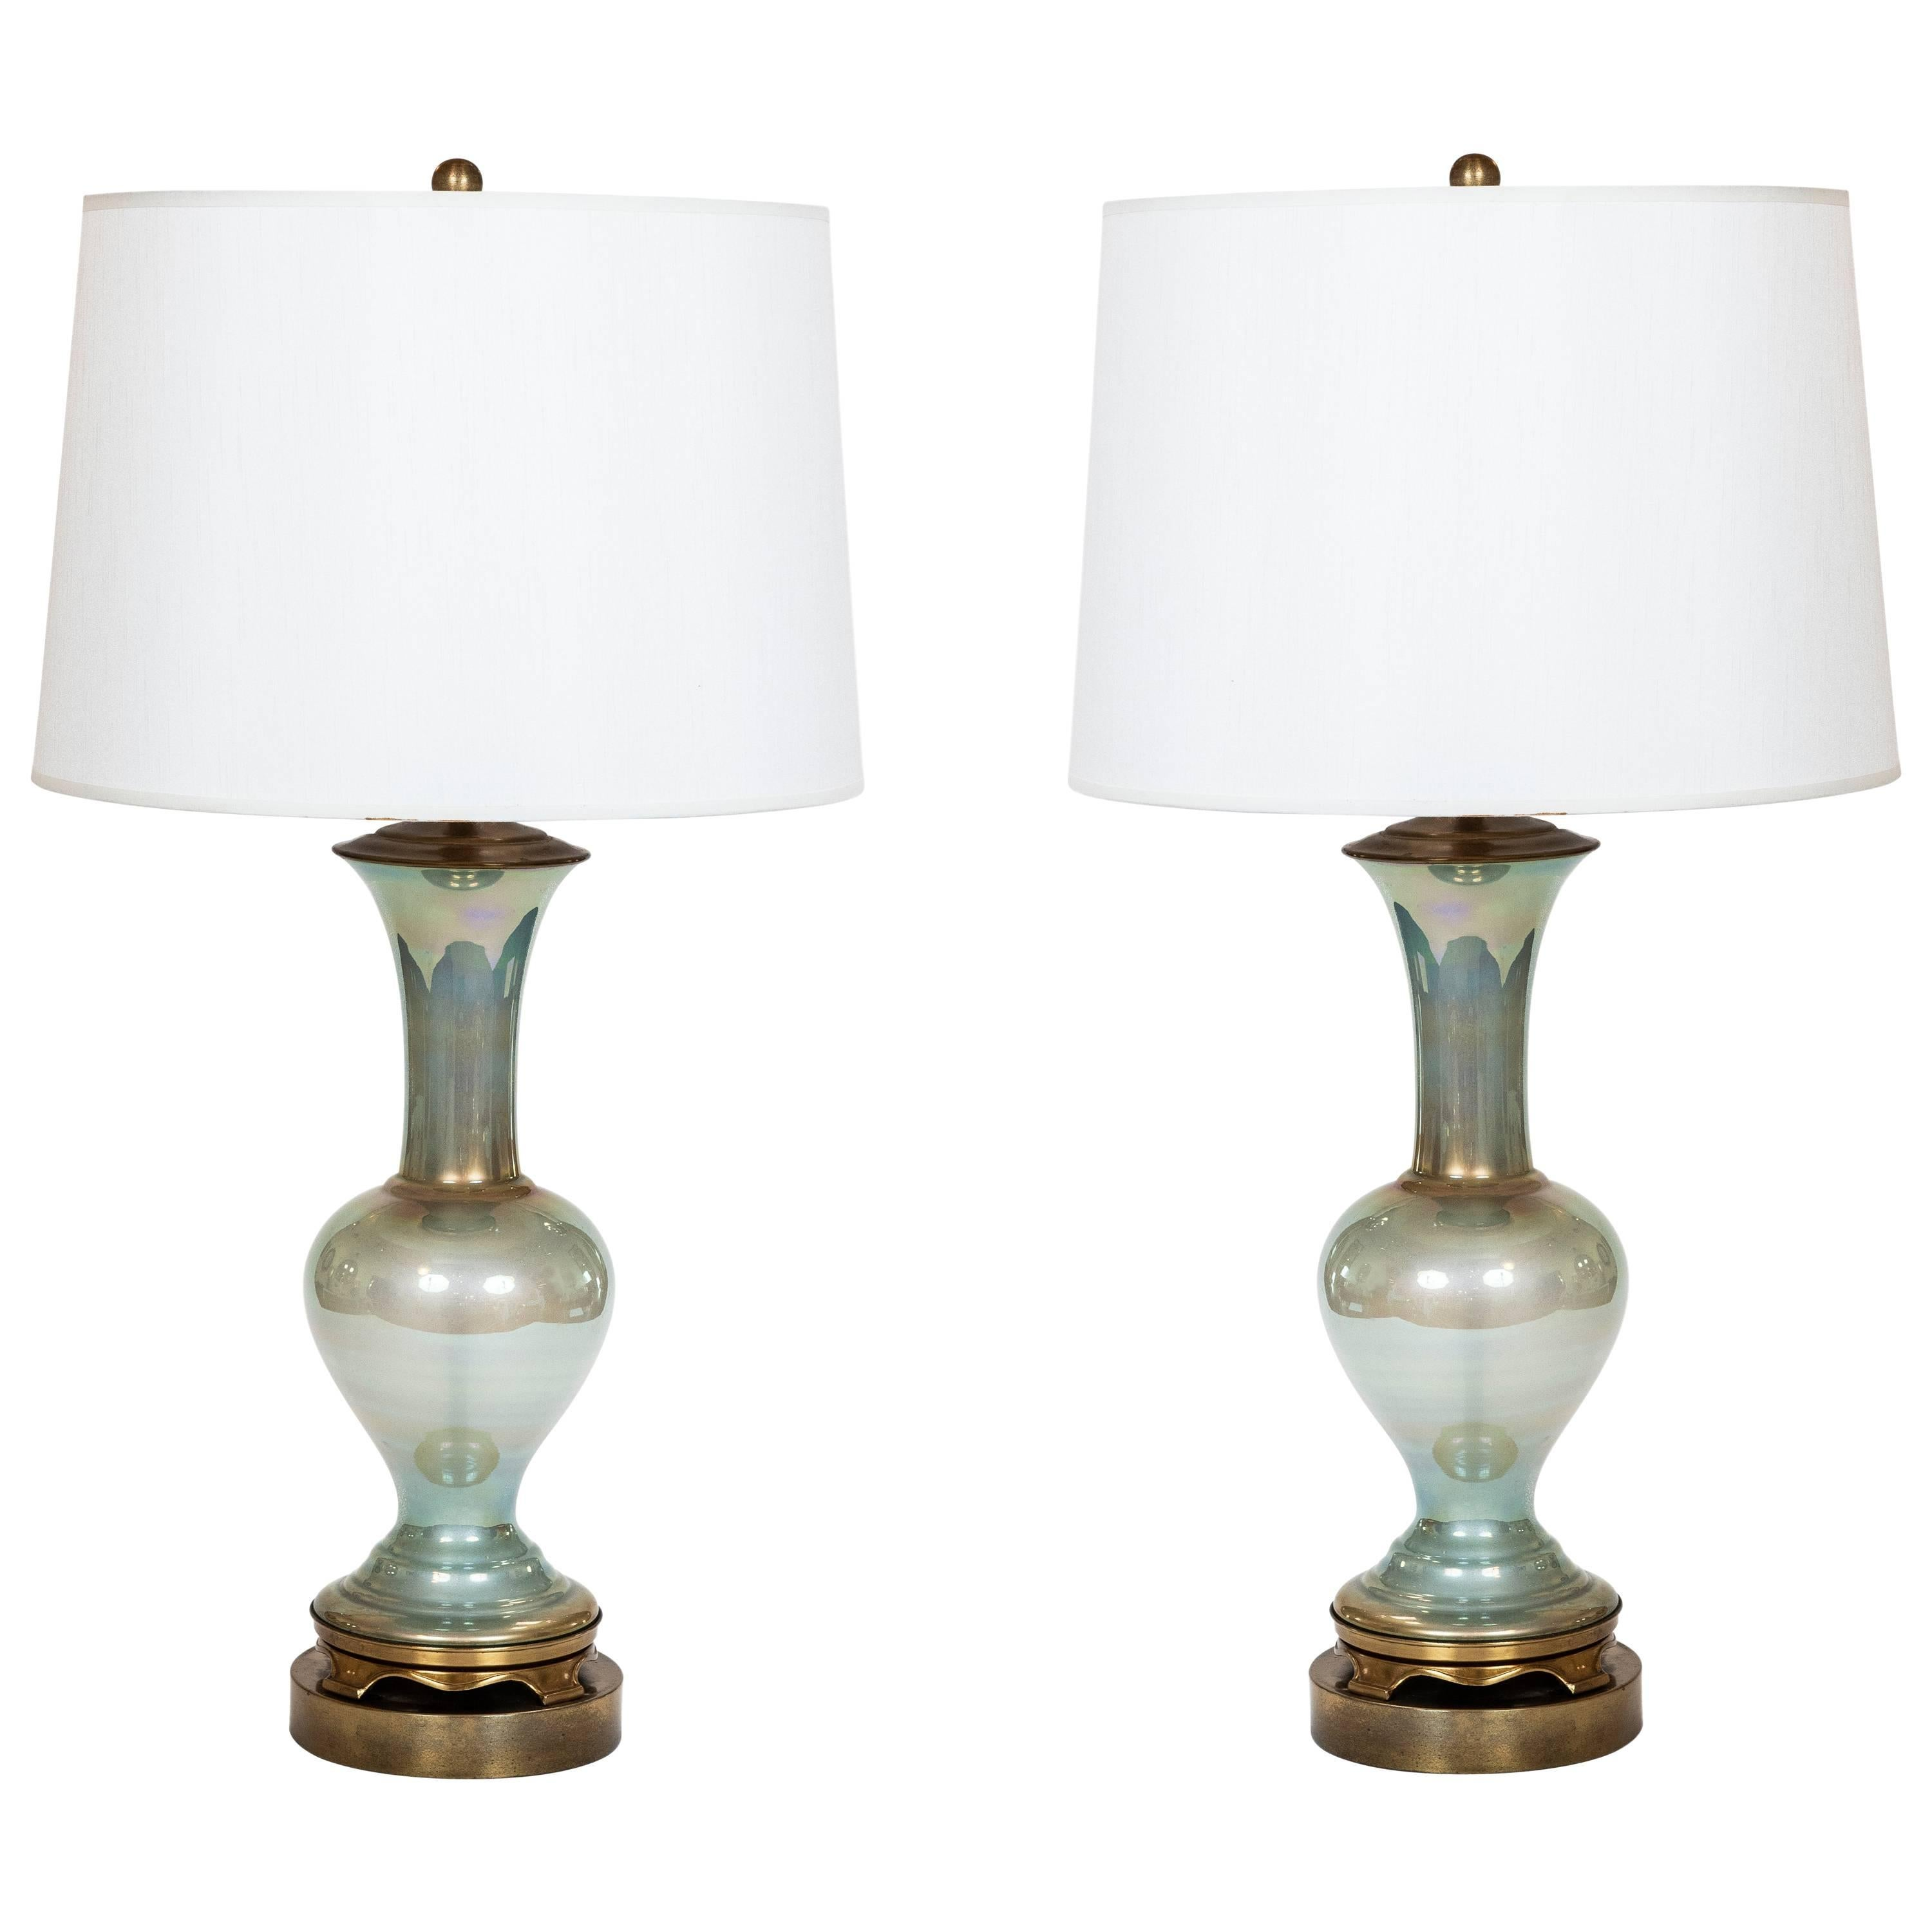 Merveilleux Pair Of Vintage Celadon Iridescent Glass Table Lamps On Brass Base For Sale